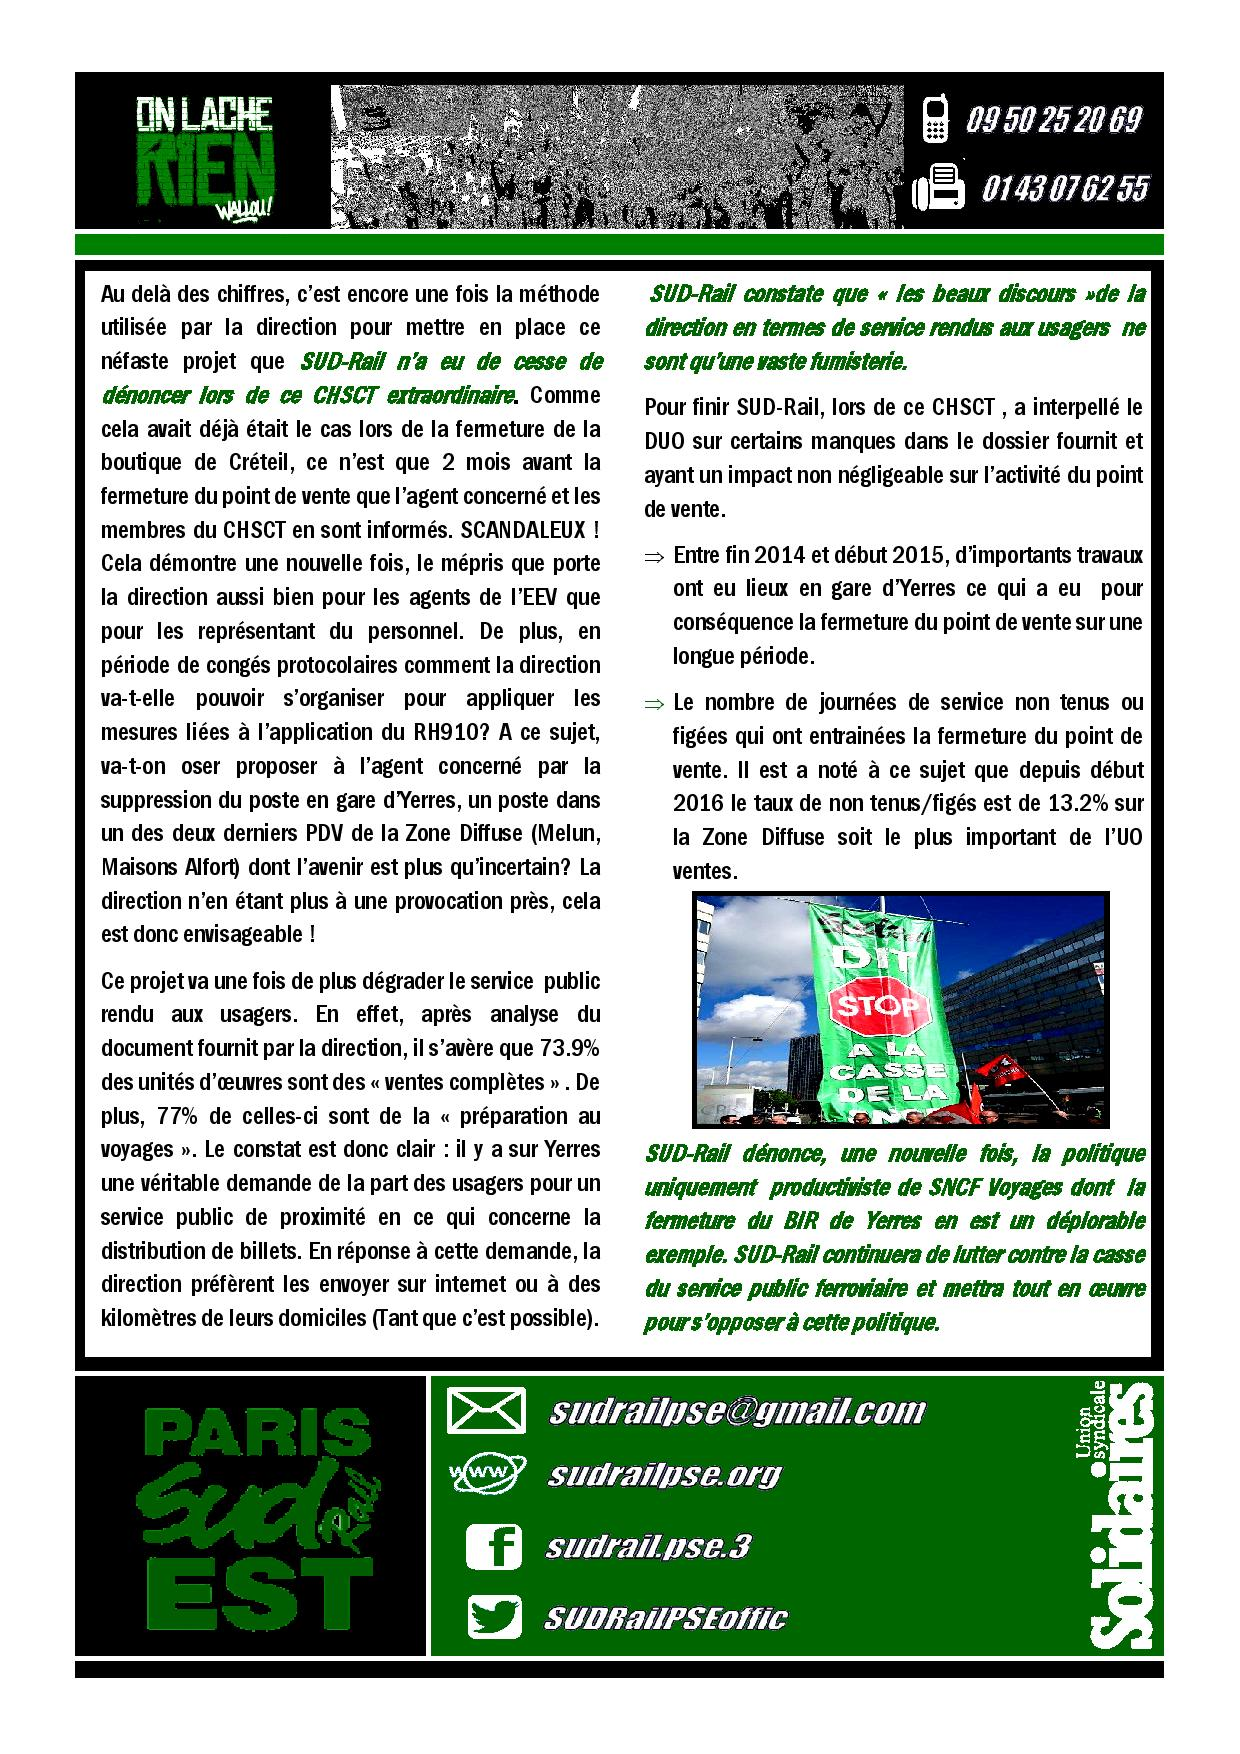 Insurge CHSCT extra UO Ventes 06-2016-page-002